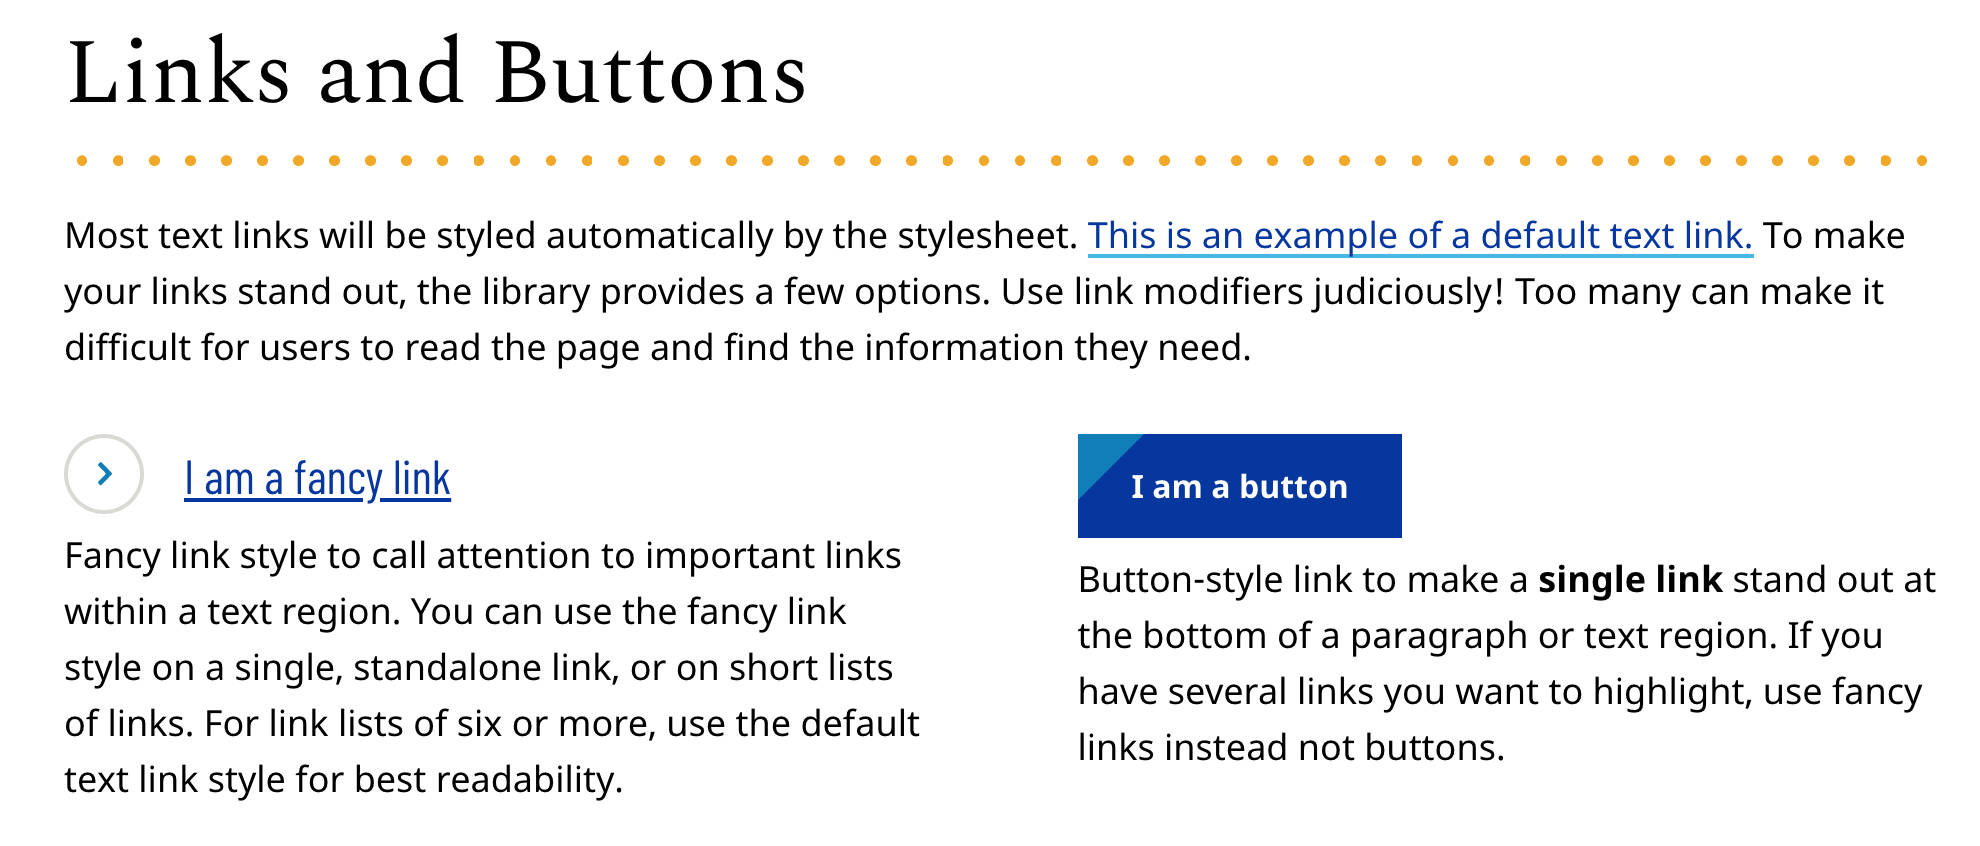 links and buttons from emory style guide